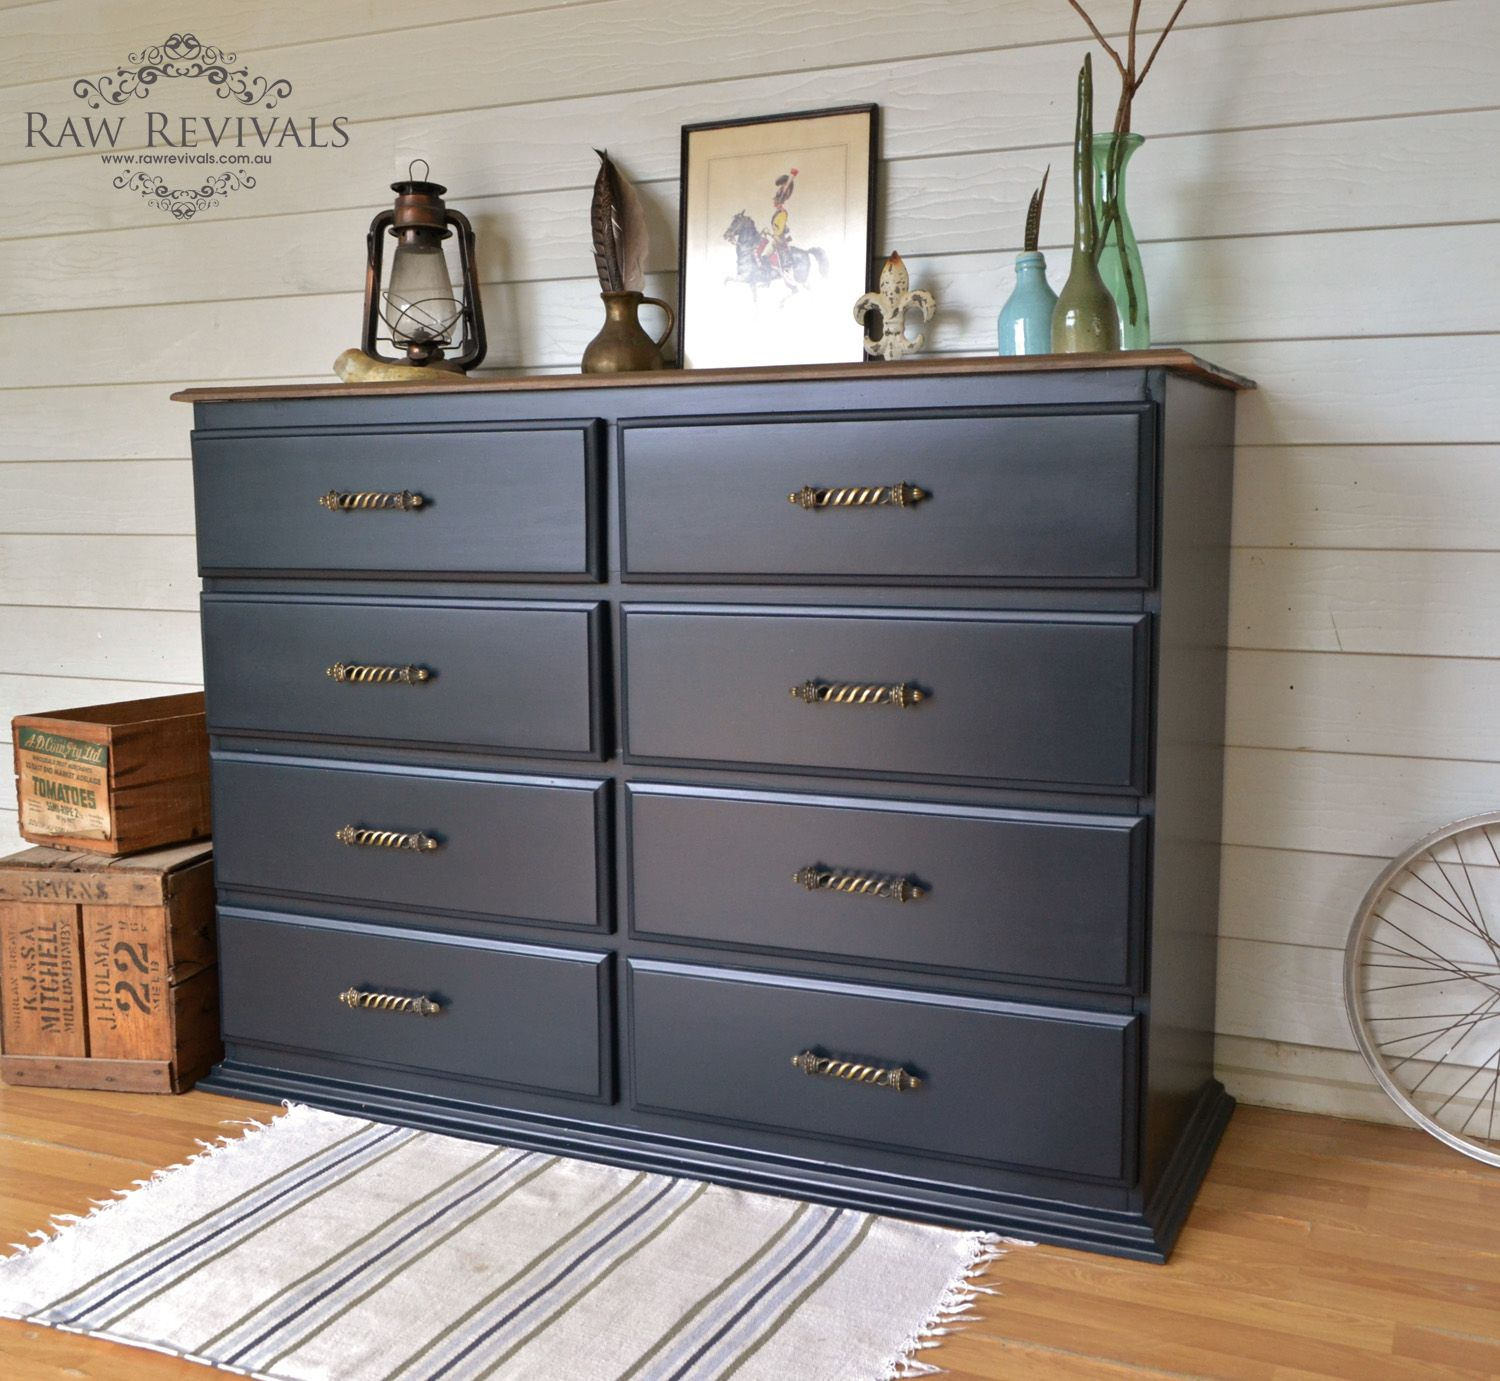 Large Chest Of Drawers Painted In Midnight Blue And Brass Handles Added Timber Top